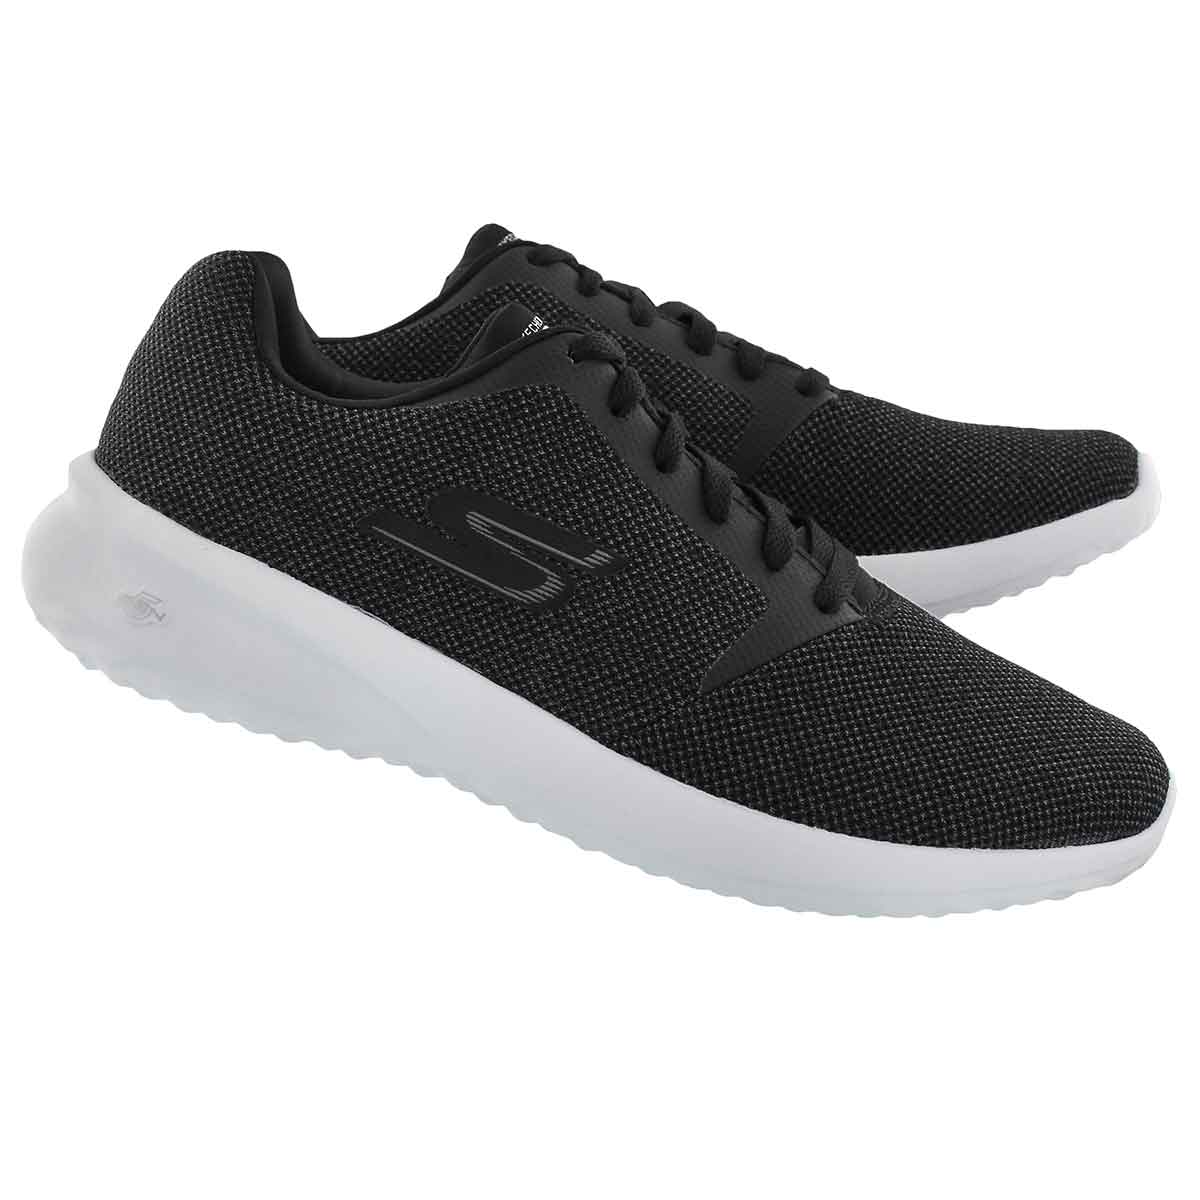 Mns OnTheGo City3.0 blk/wht running shoe